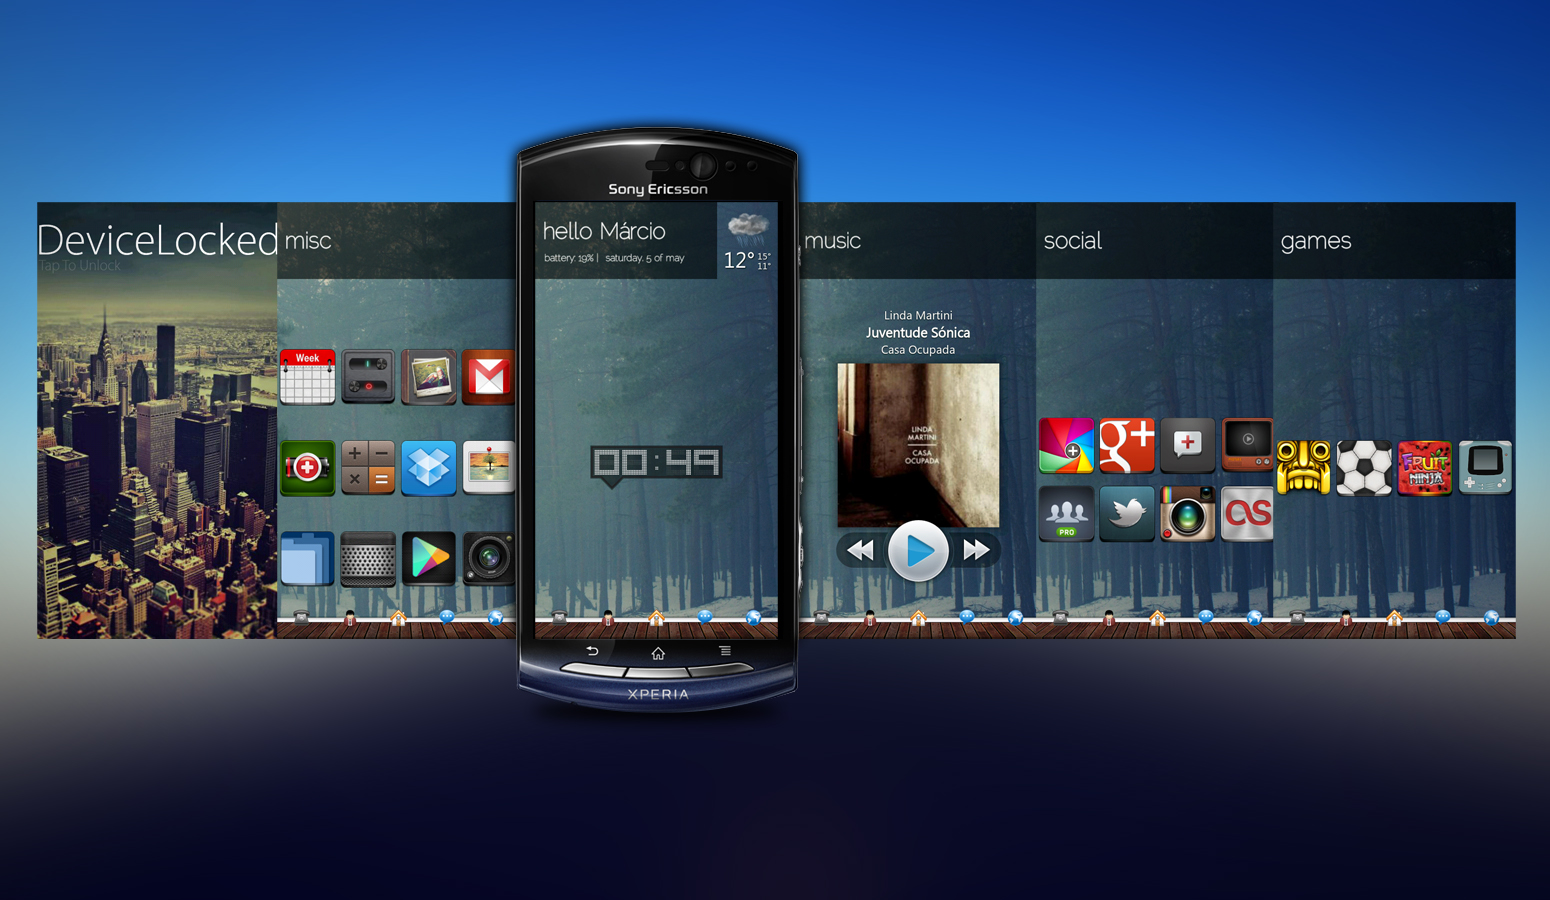 Current Setup - Xperia Neo - 7th, May by blackboxdesign